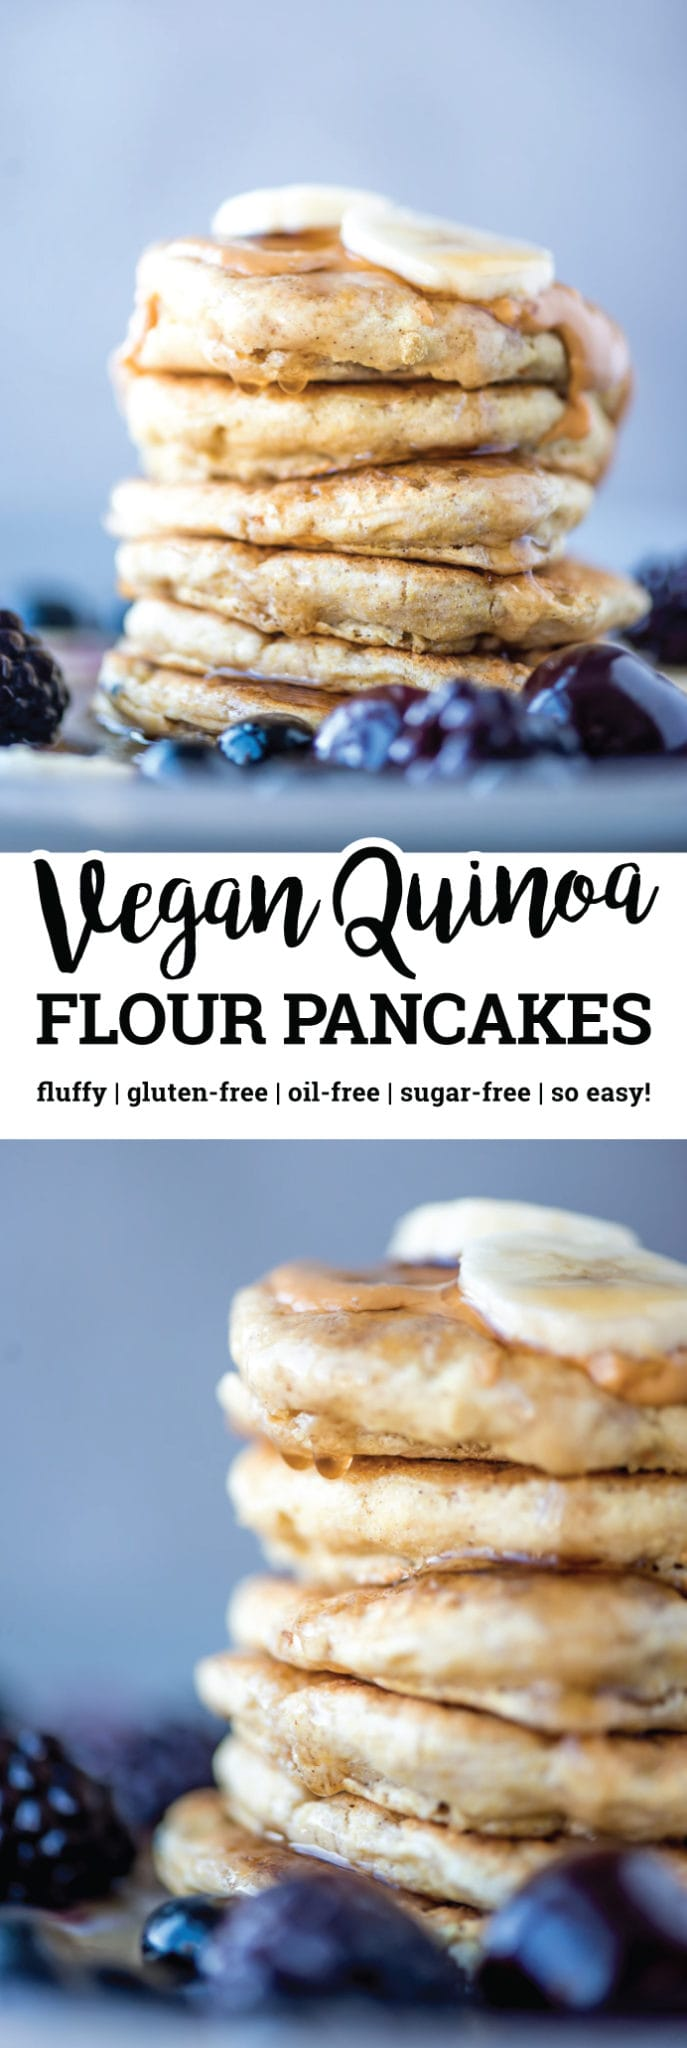 These simple, fluffy vegan quinoa flour pancakes are gluten-free, oil-free, sugar-free and easy to make with just a few ingredients. All you need is quinoa flour, baking powder, sea salt, sweetener and water and presto! Fluffy, gluten-free vegan pancakes that taste amazing.